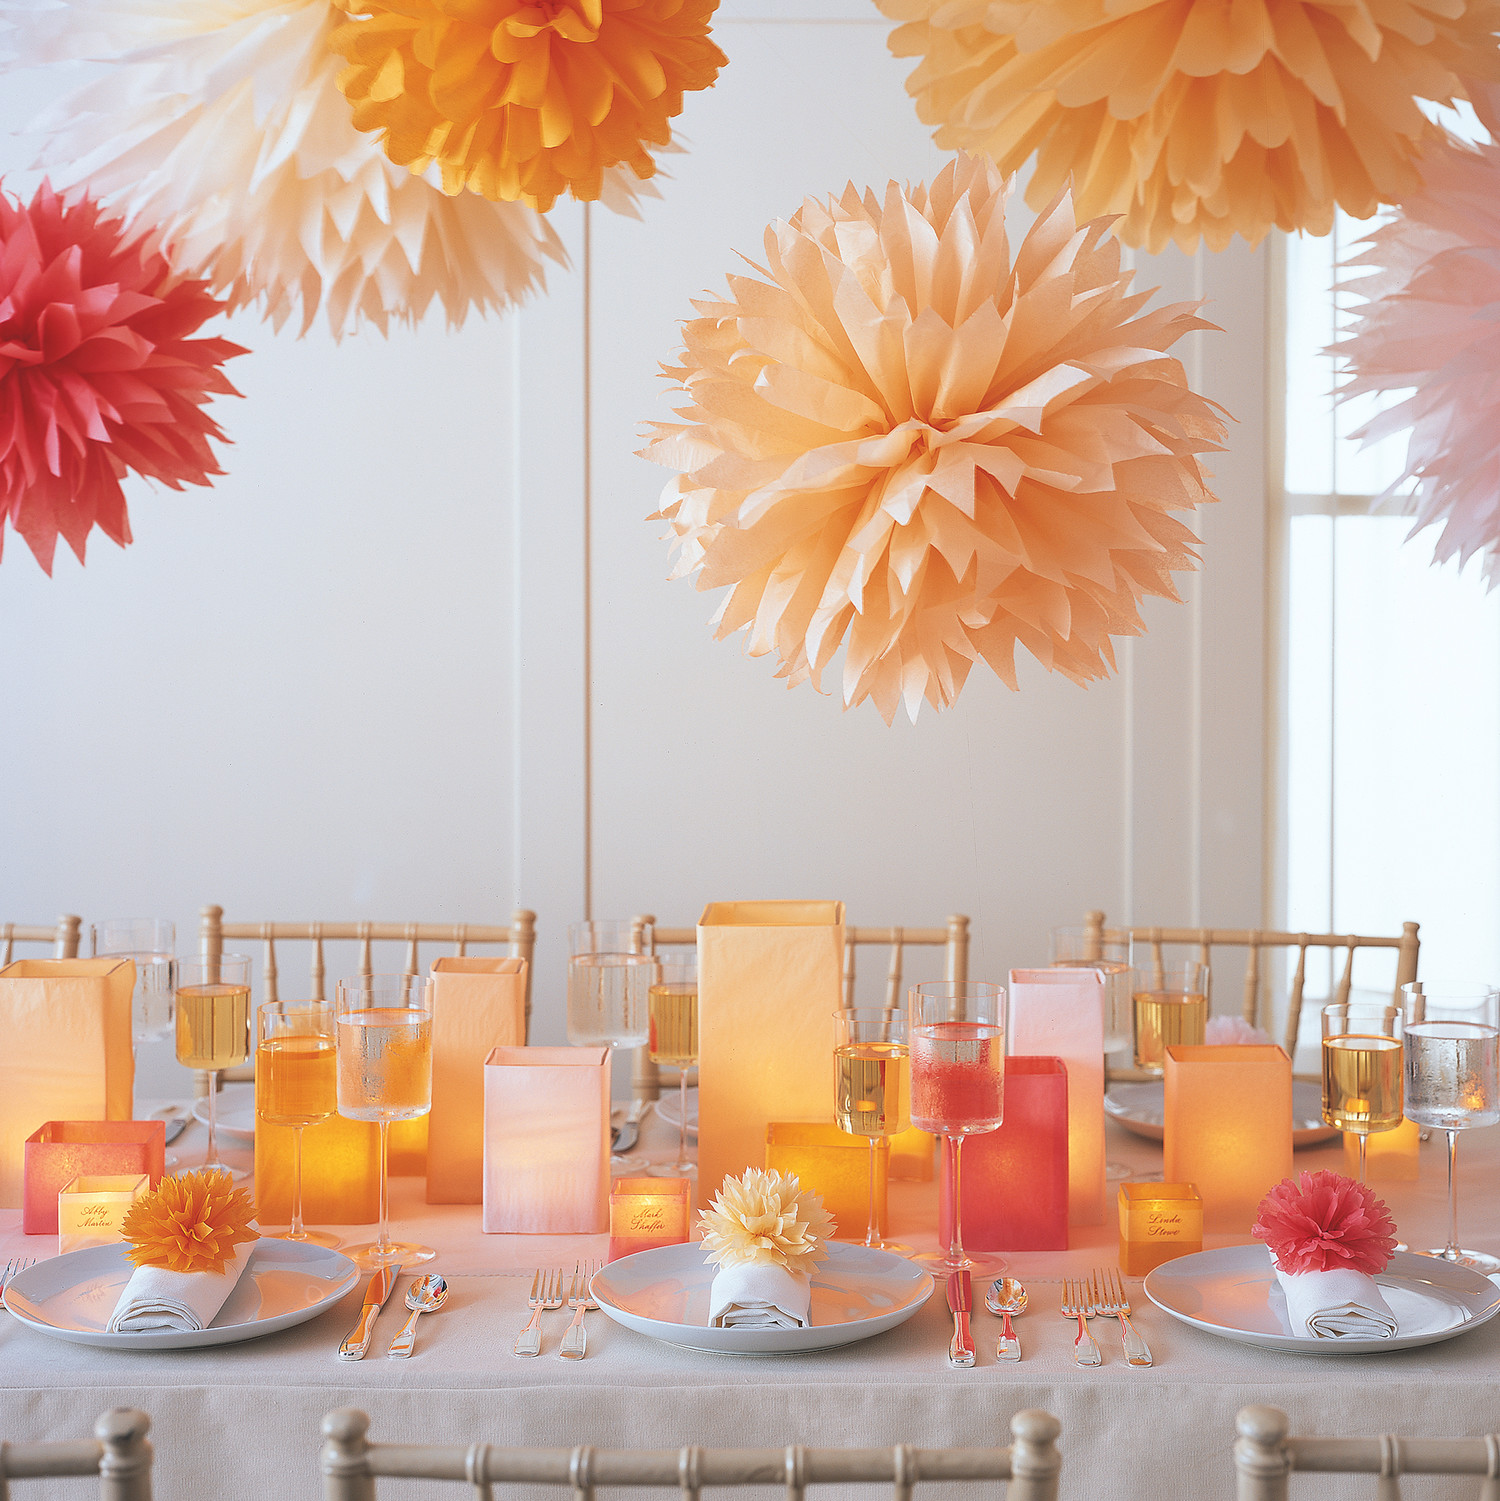 Pom Poms and Luminarias & Video